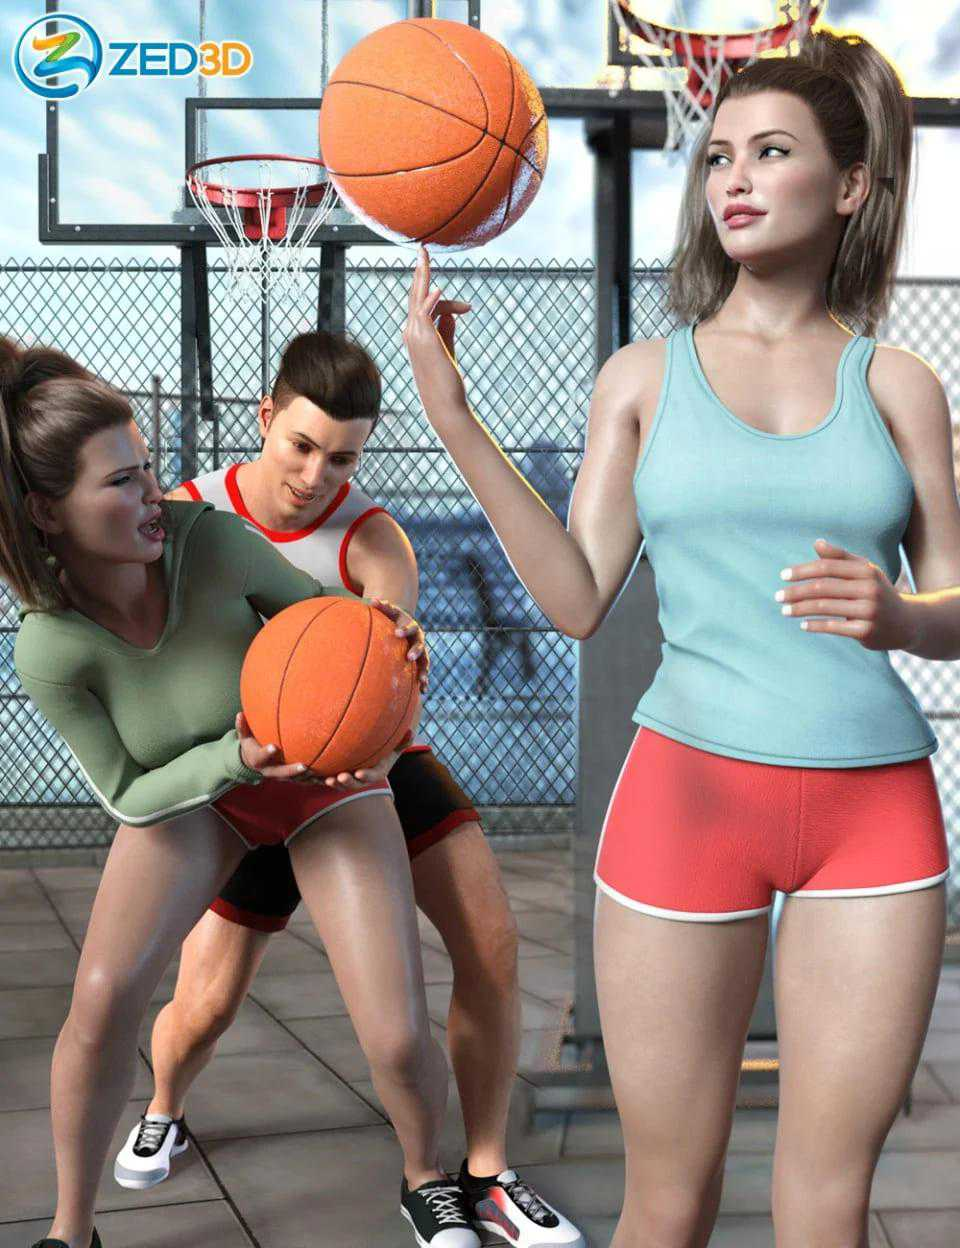 Z Shooting Hoops Scene and Poses for Genesis 8